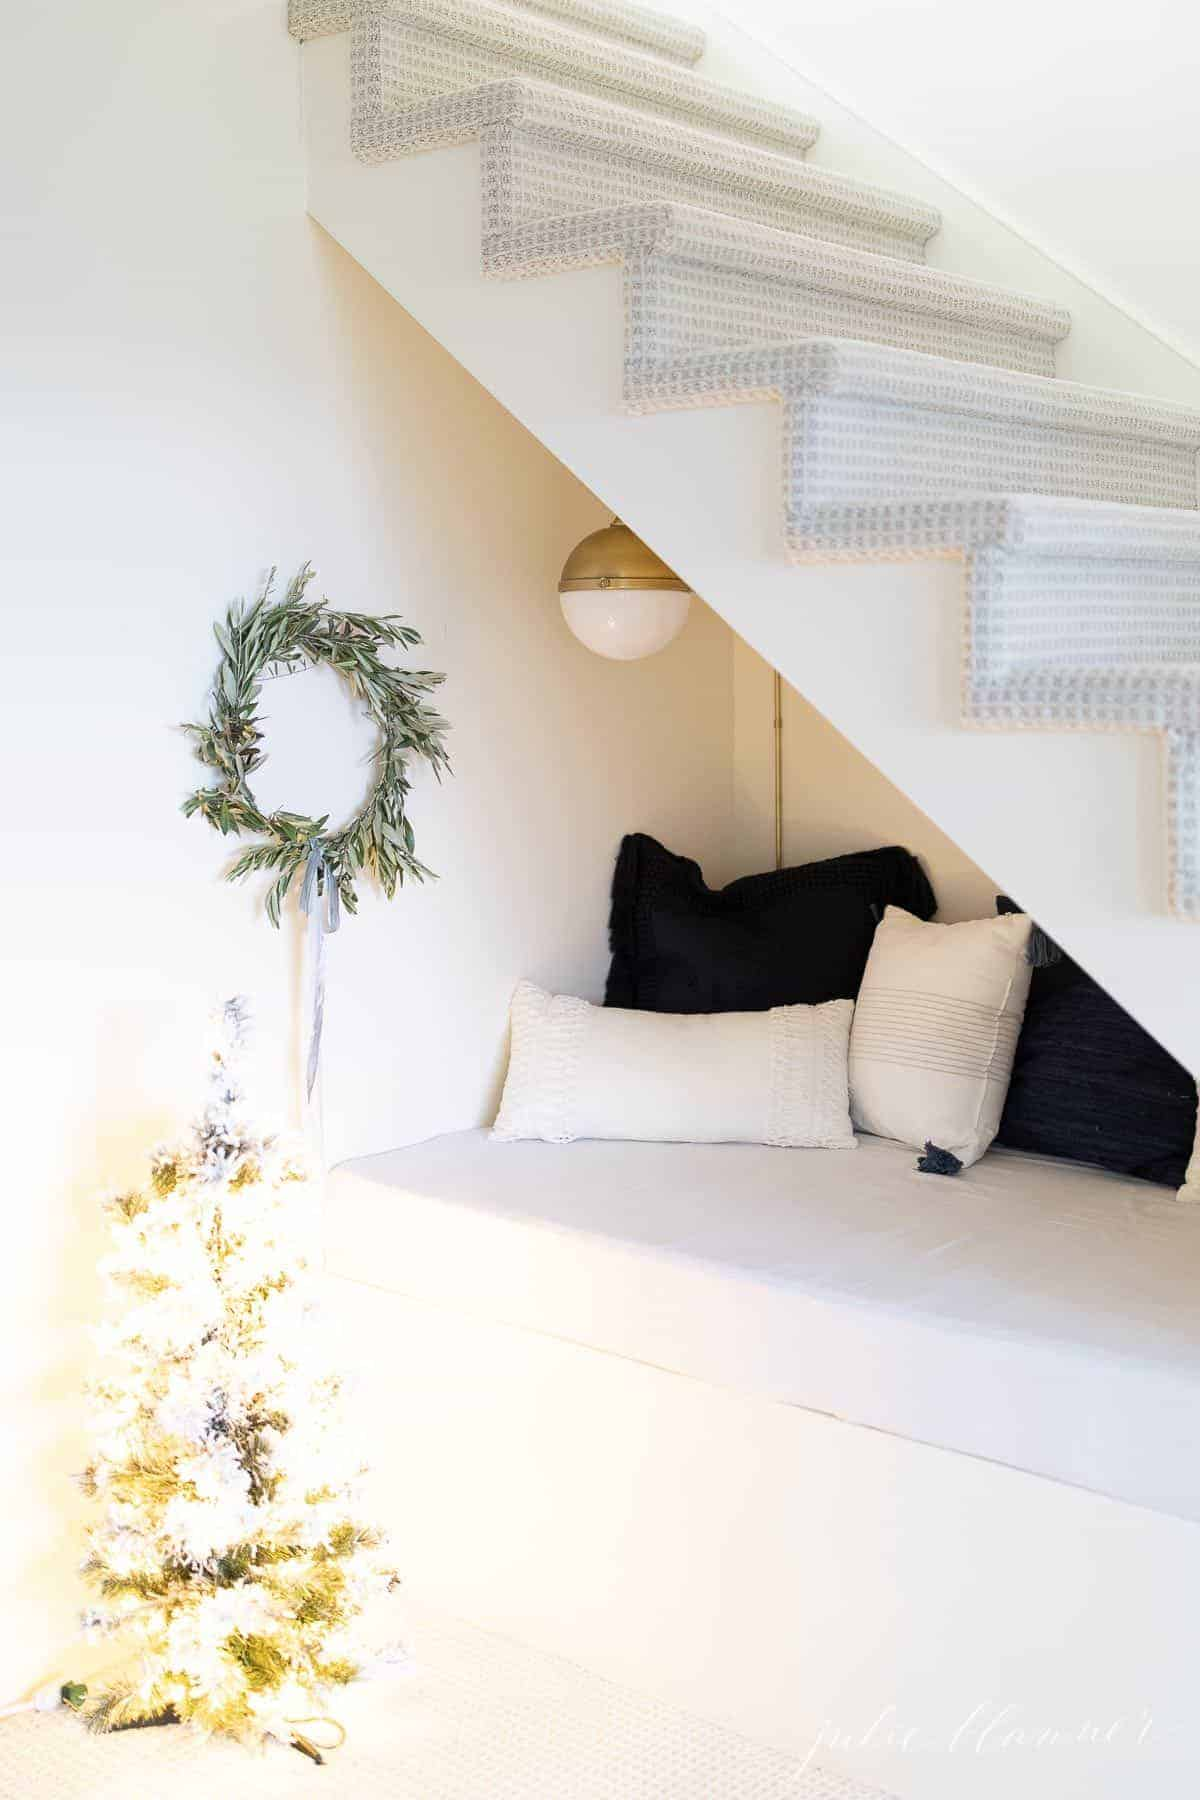 A DIY Christmas wreath hanging in a nook under the stairs piled with blue and white pillows.